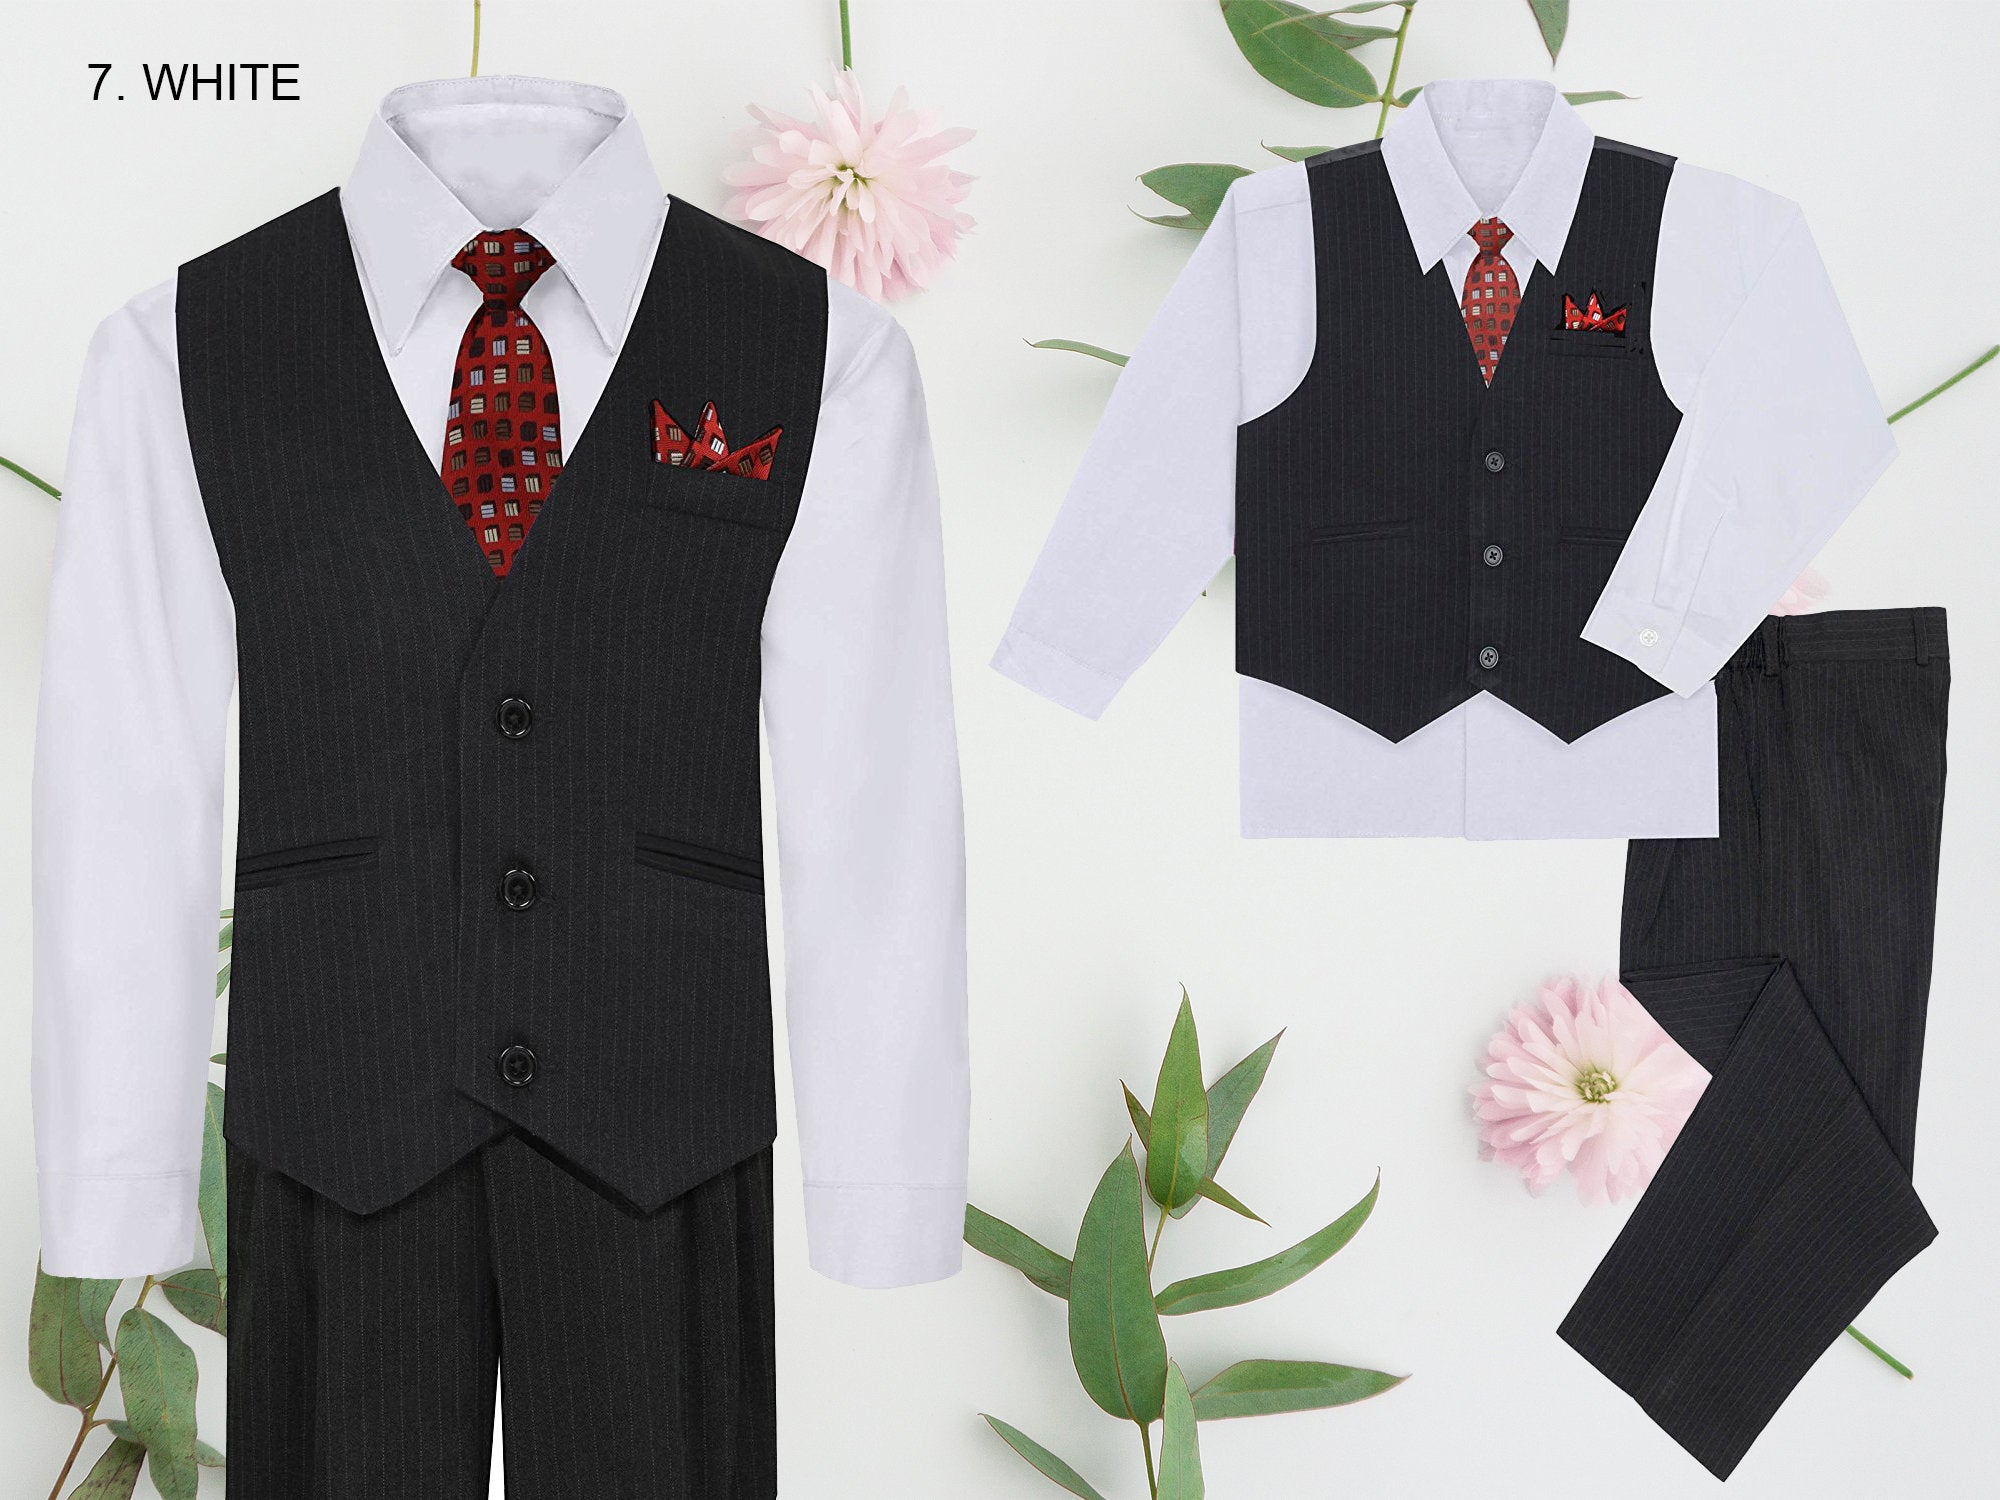 b3dd38392b7a Tuxedos Baby Boys Baby Boys Black 5 Piece Classic Vest Jacket Pants Special  Occasion Suit 3-24M